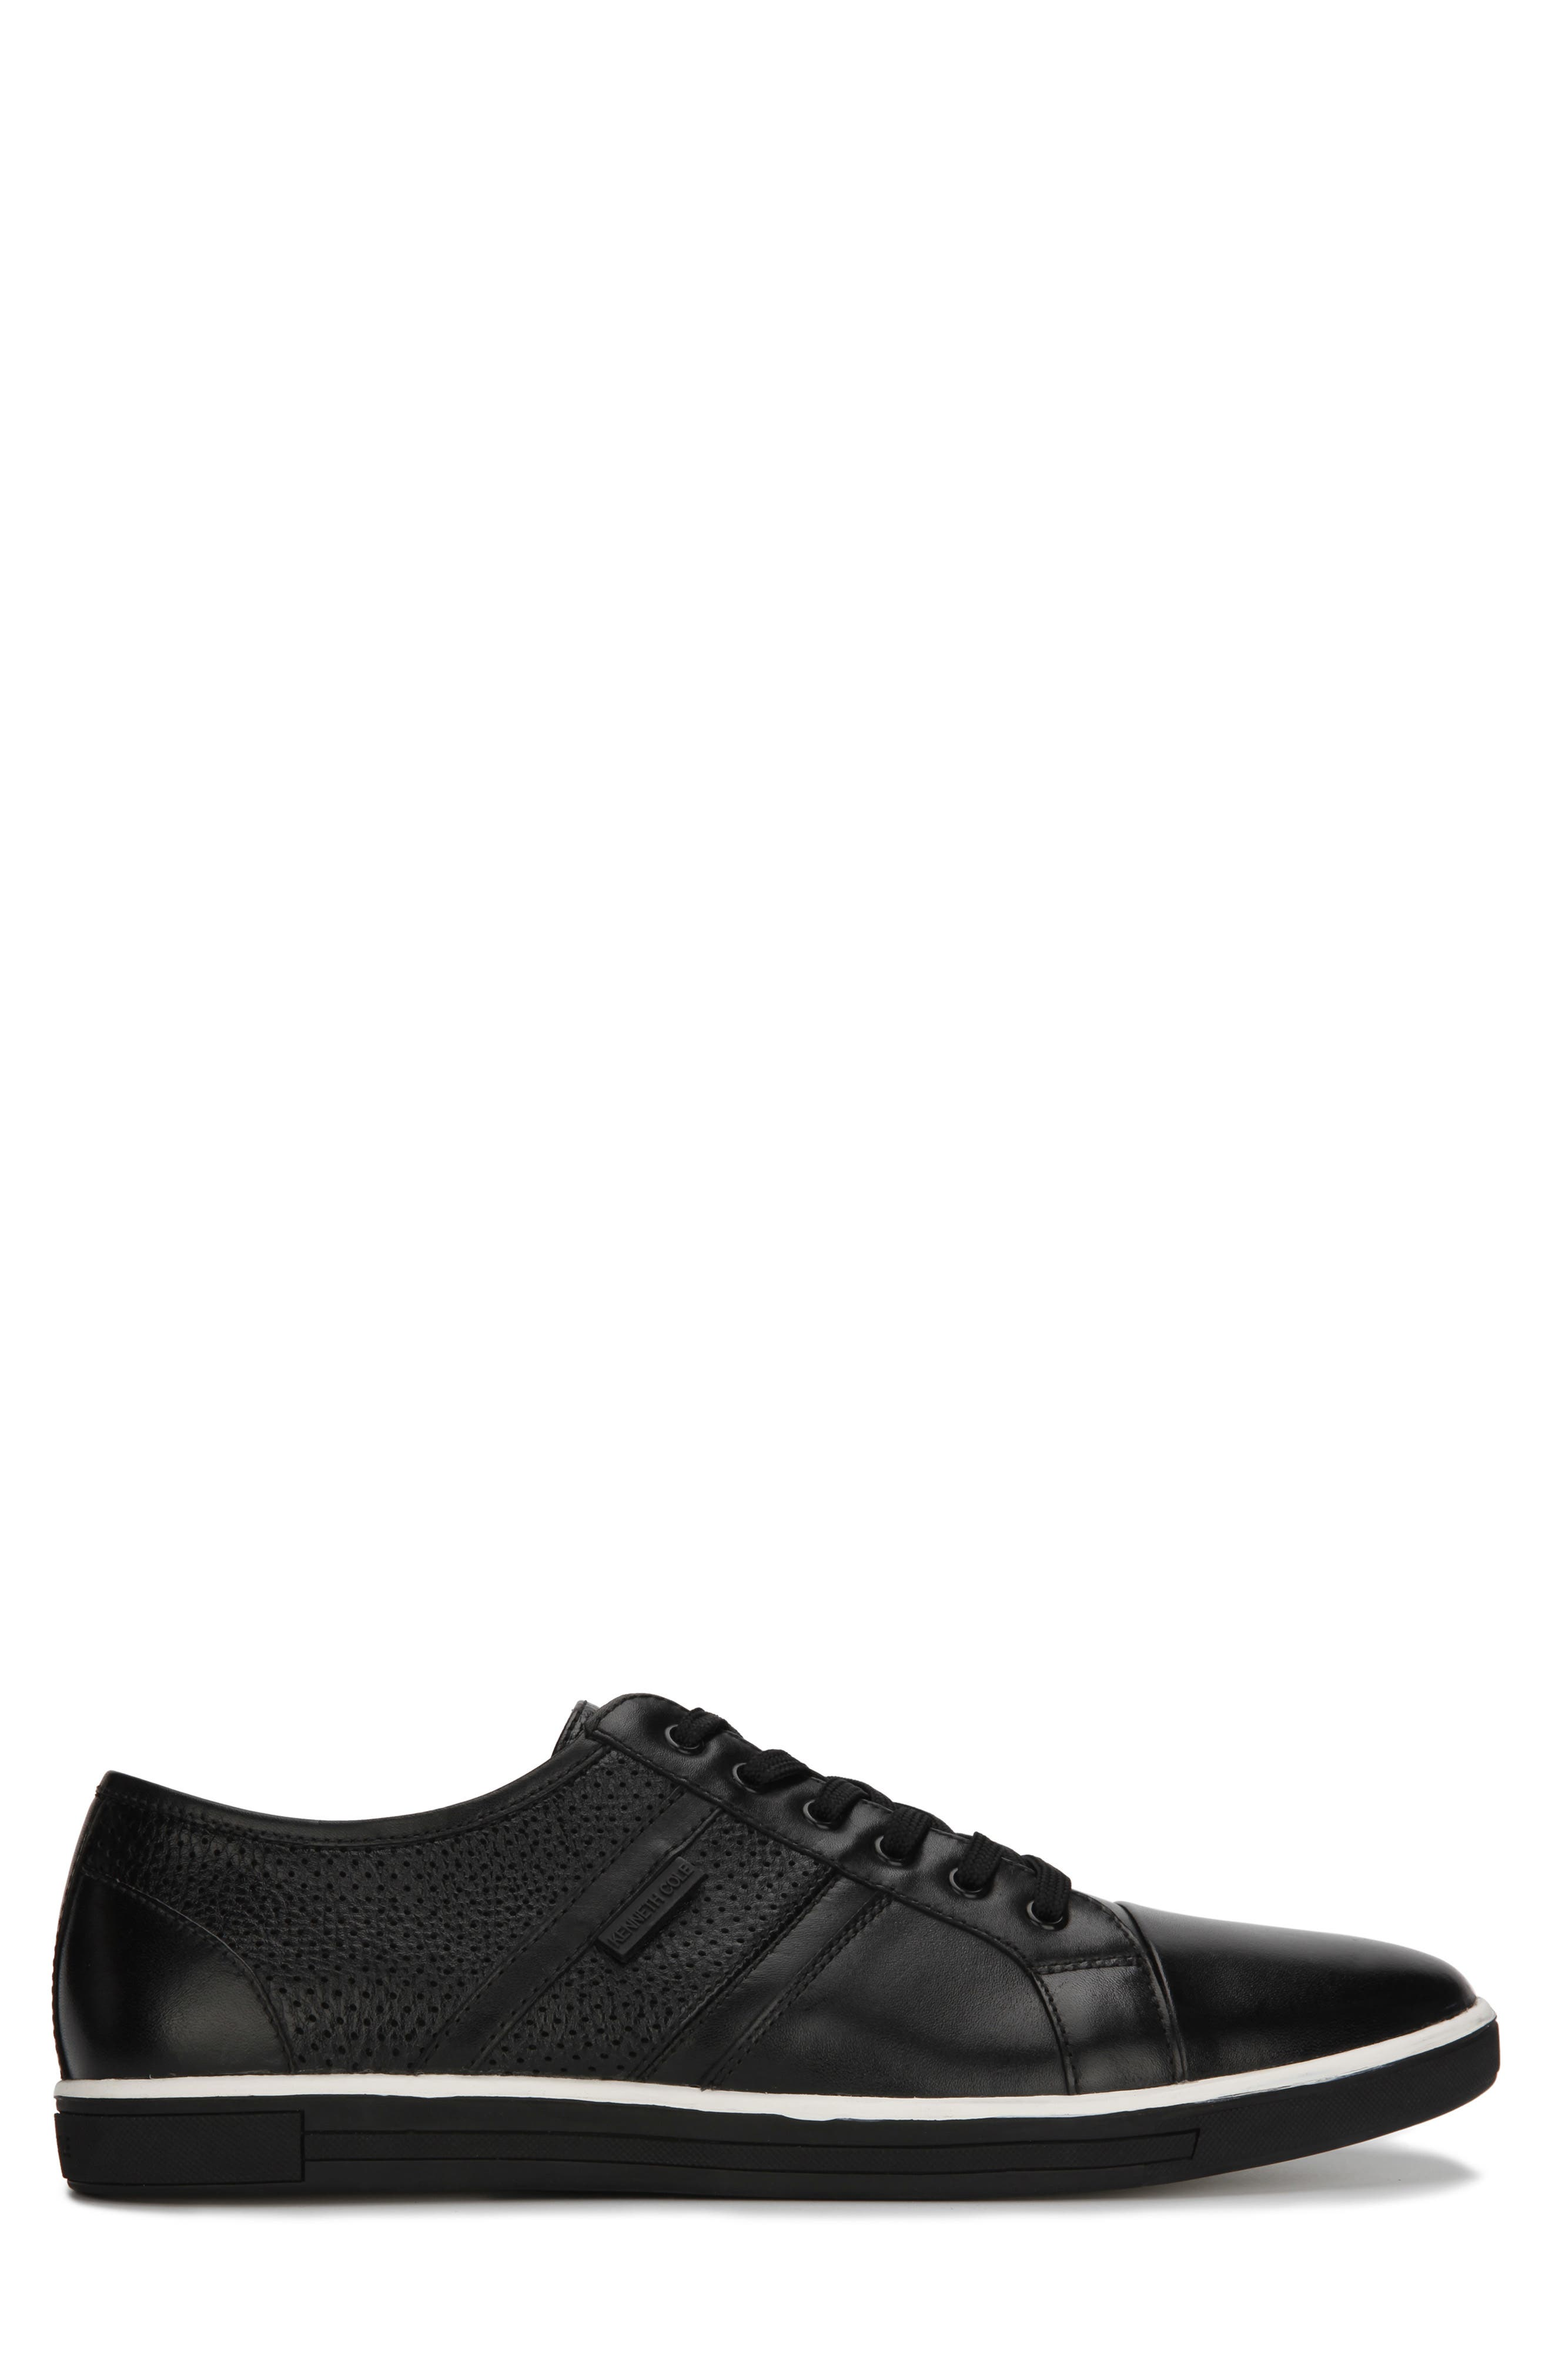 KENNETH COLE NEW YORK, Initial Step Sneaker, Alternate thumbnail 2, color, BLACK LEATHER